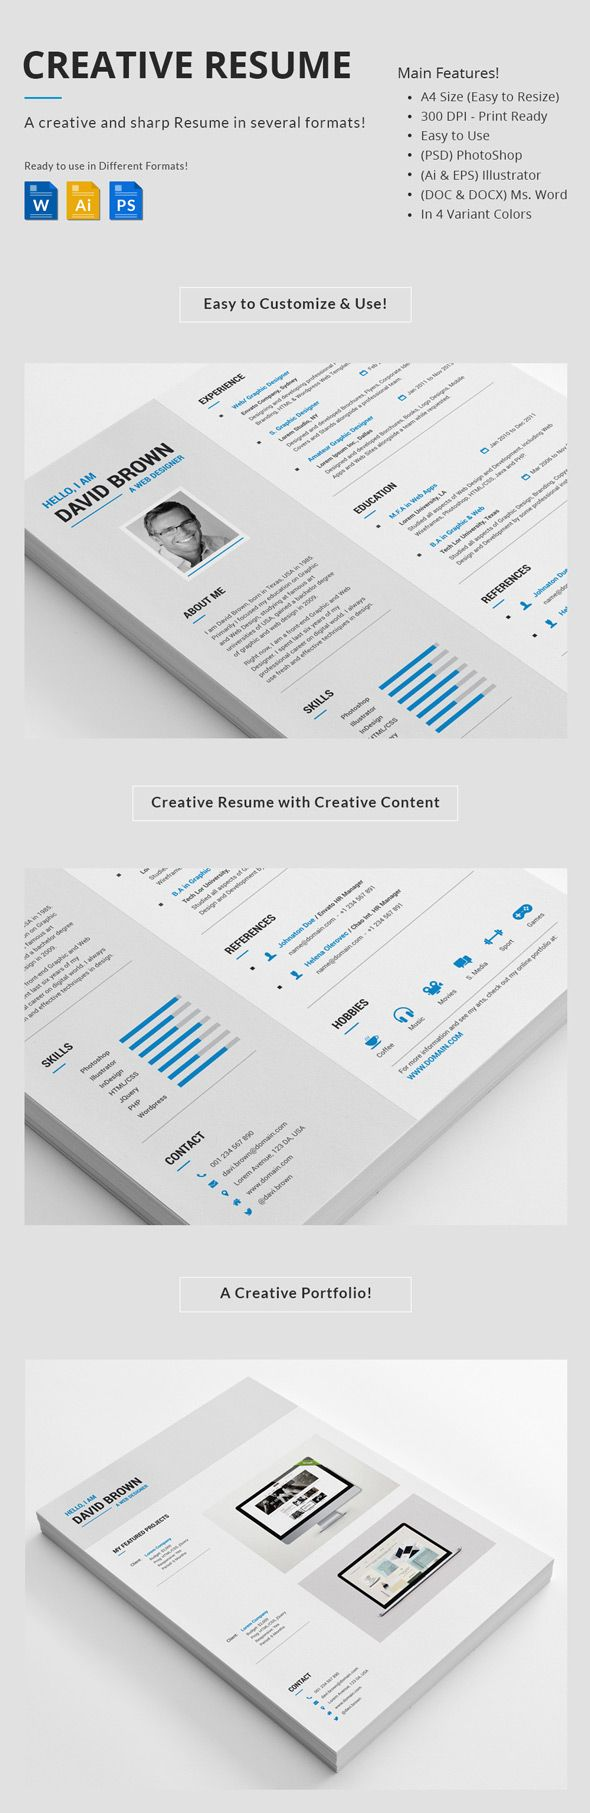 professional creative resume set - Interesting Resume Formats